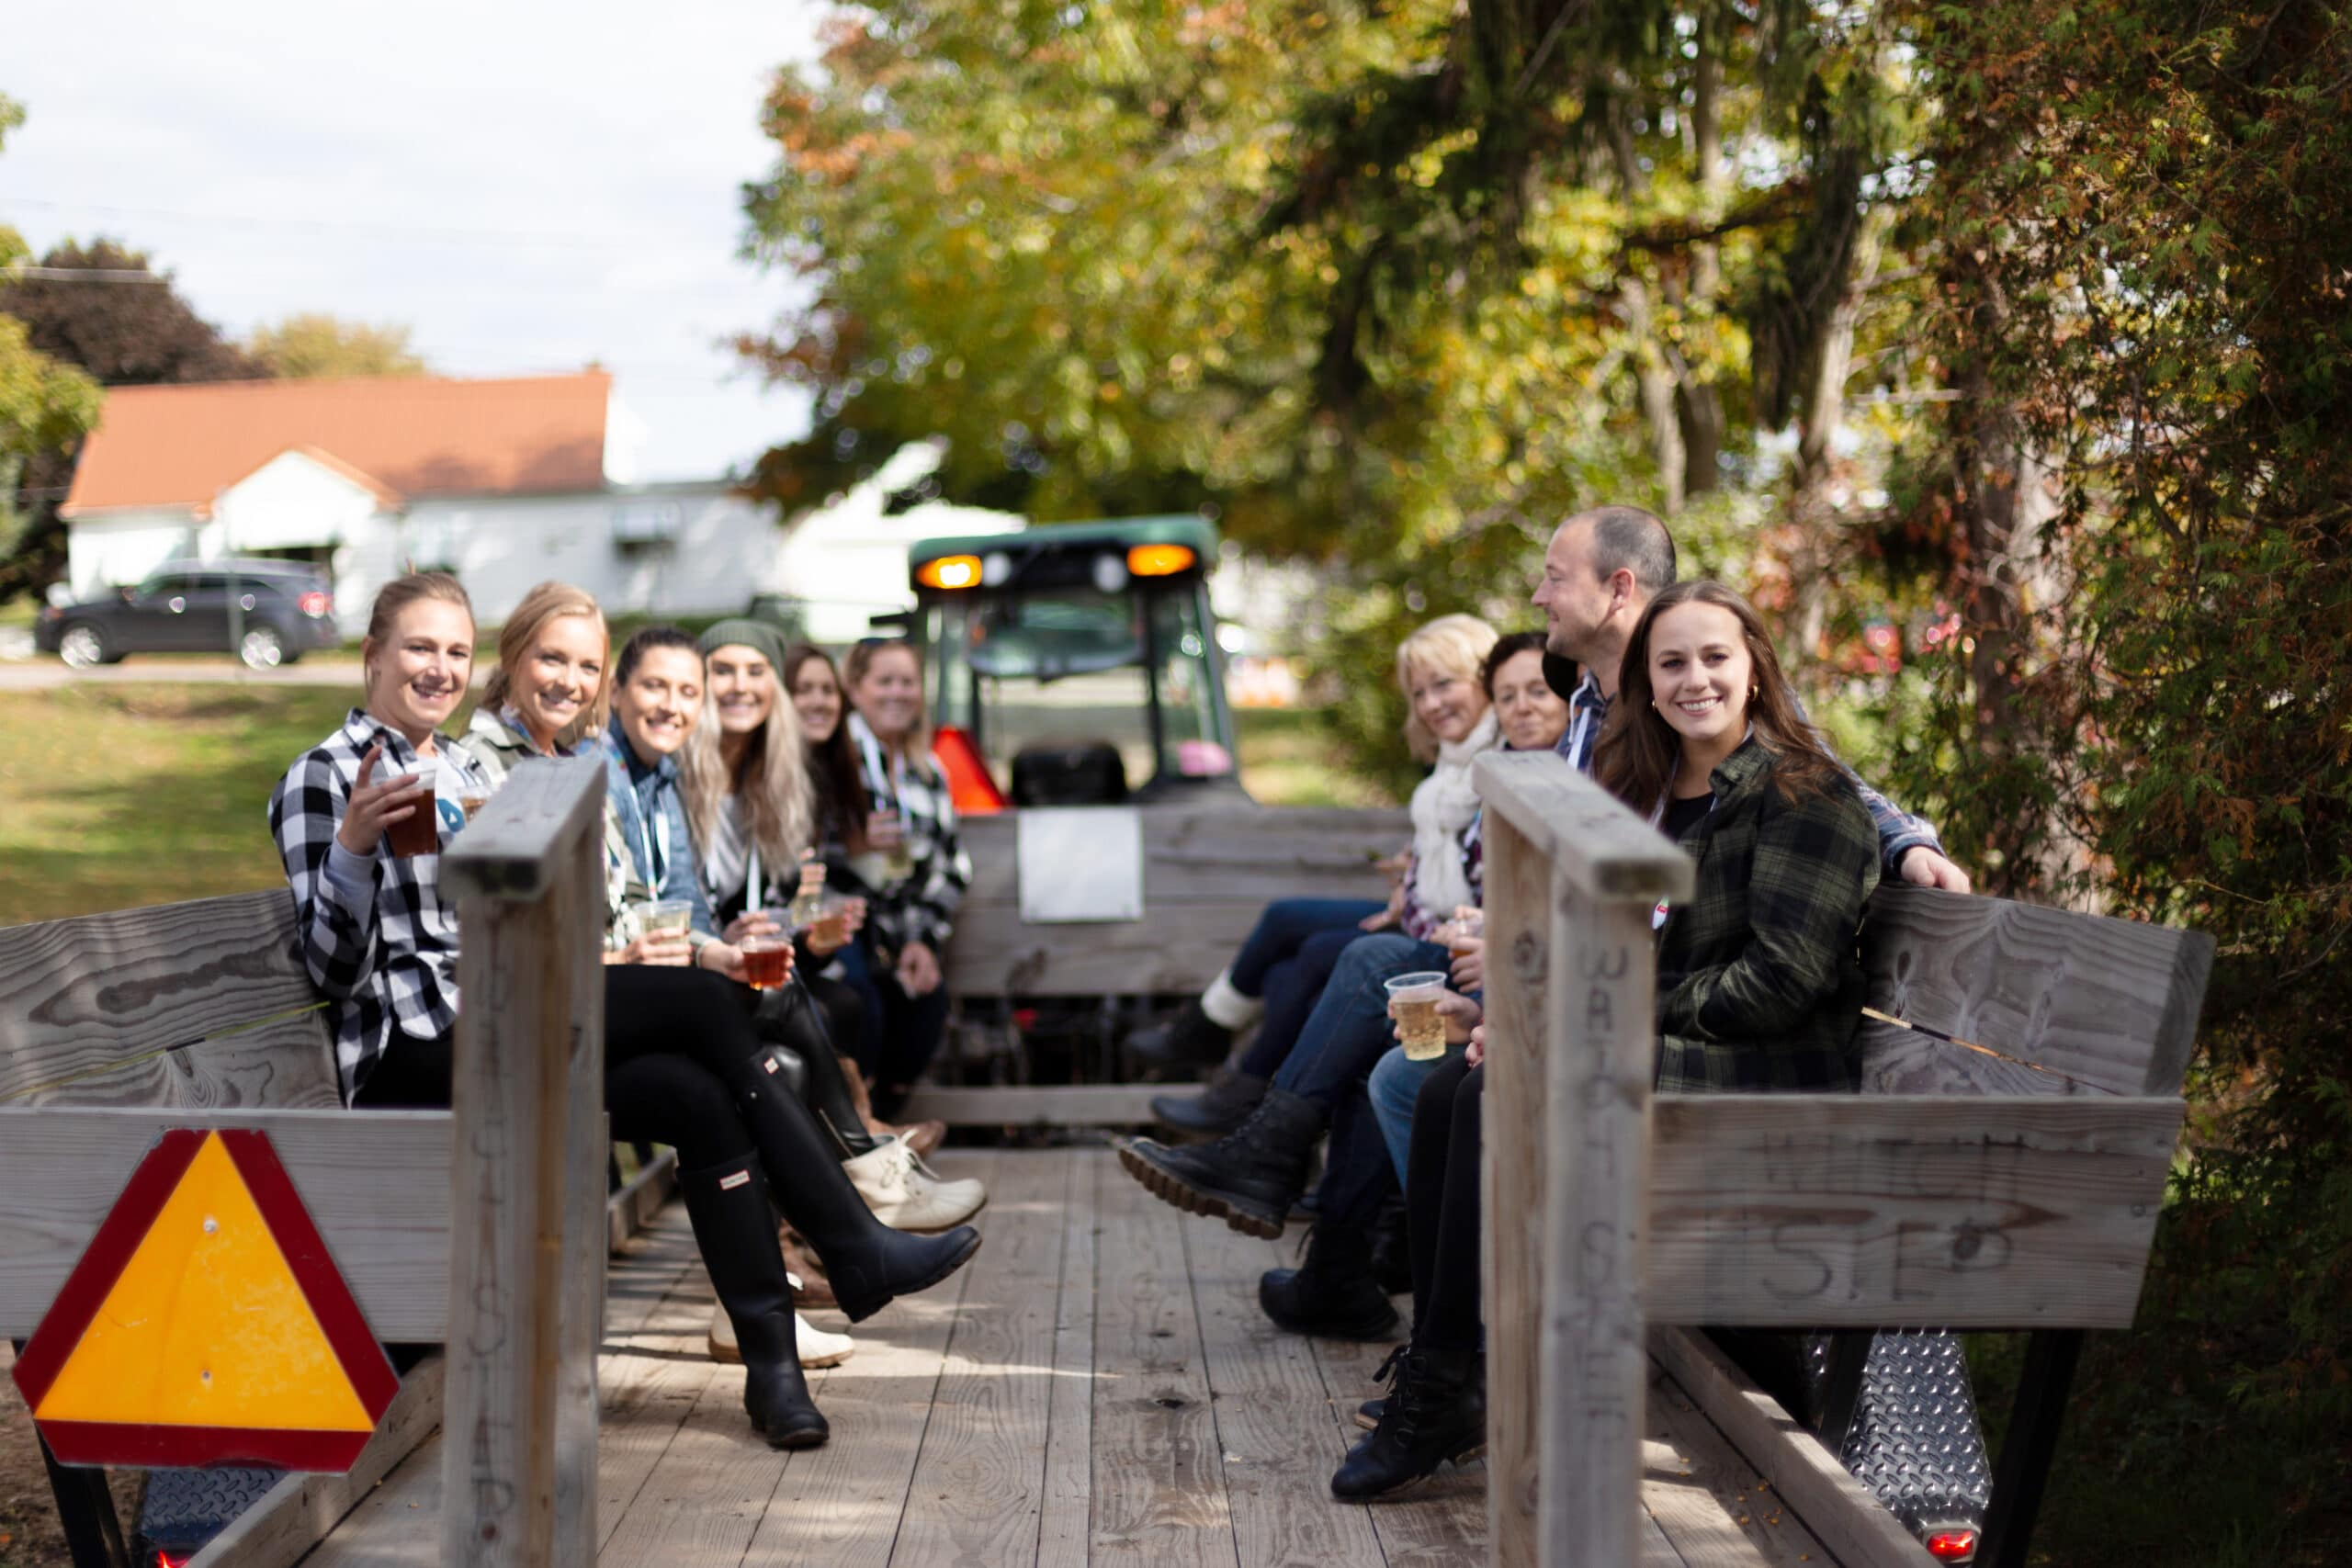 Treadstone employees enjoying a tractor ride and other Fall activities in Grand Rapids.